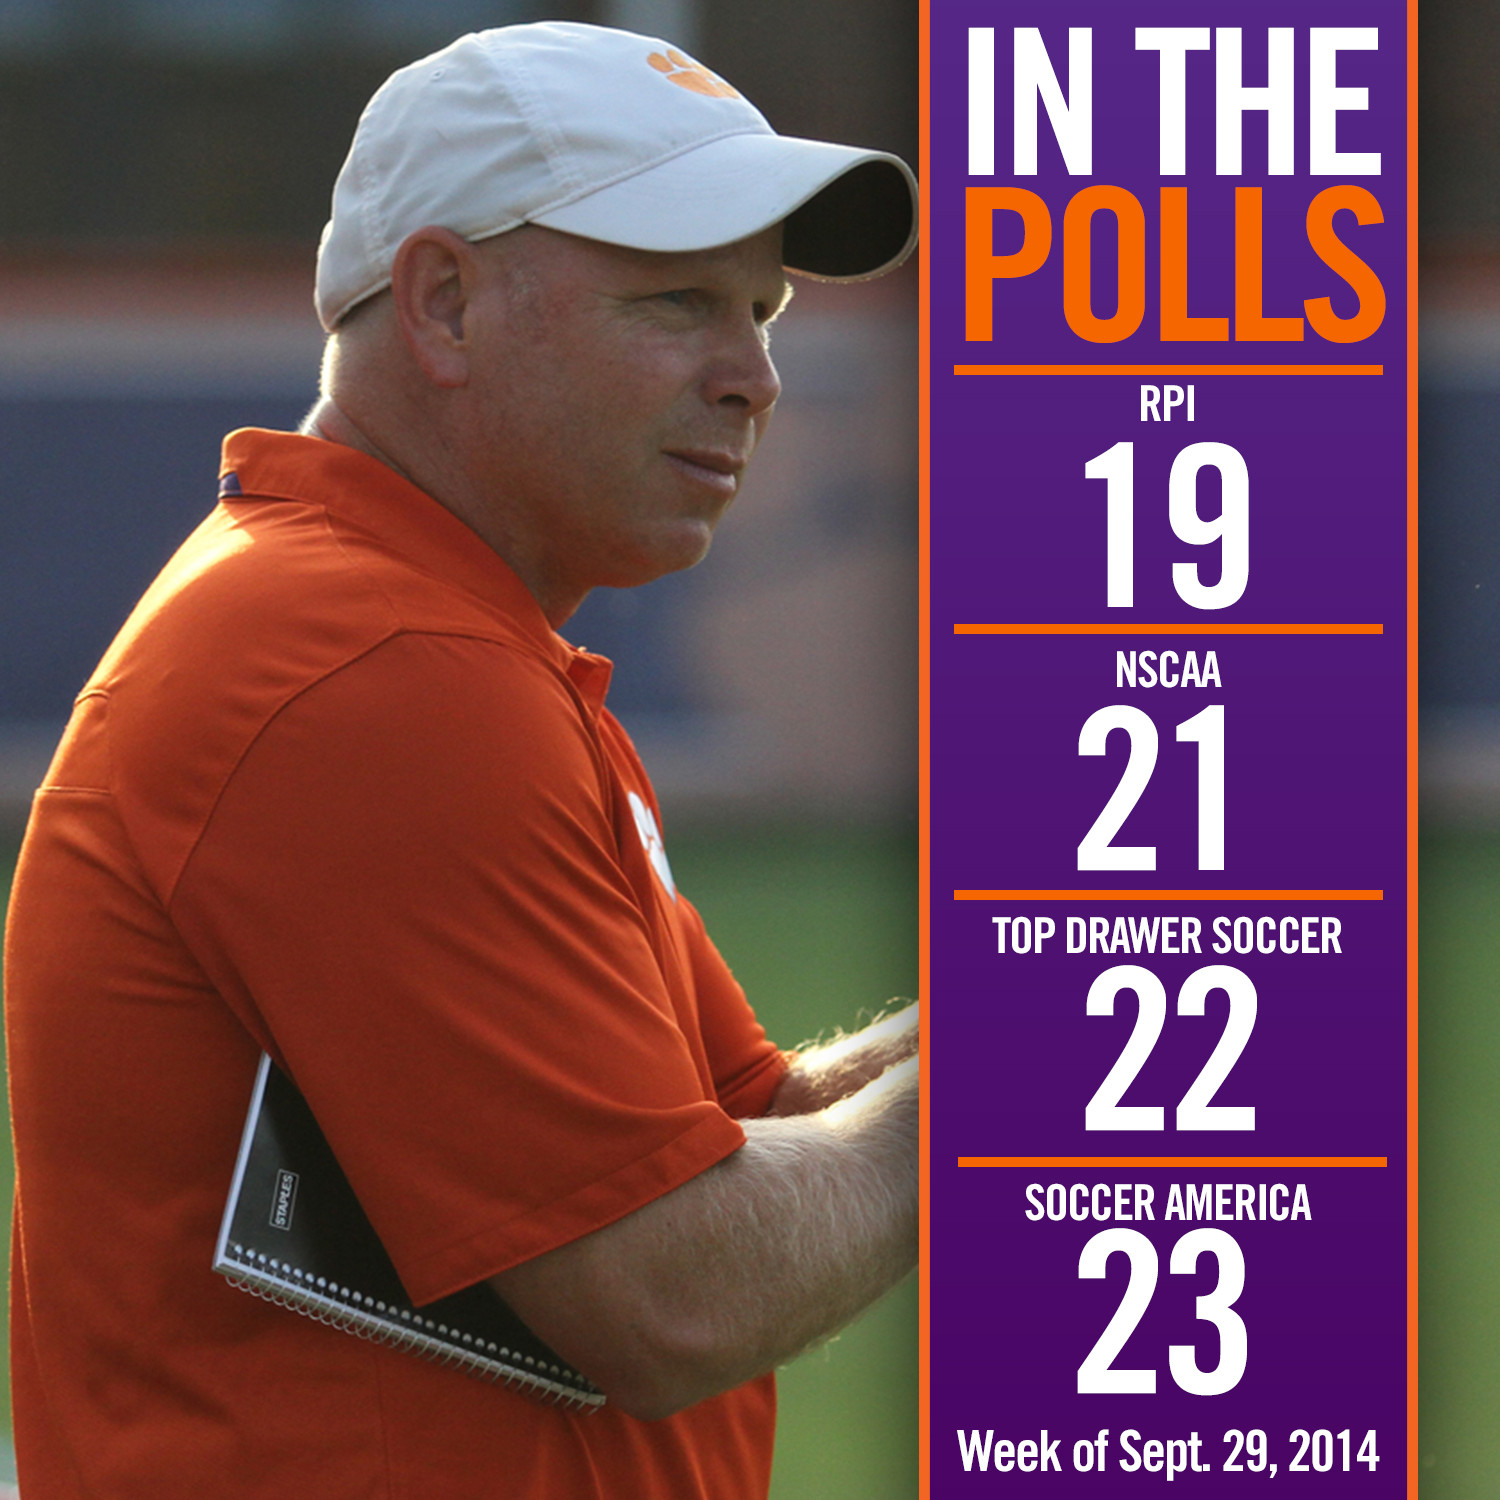 Tigers 19th in RPI, 21st in NSCAA Poll